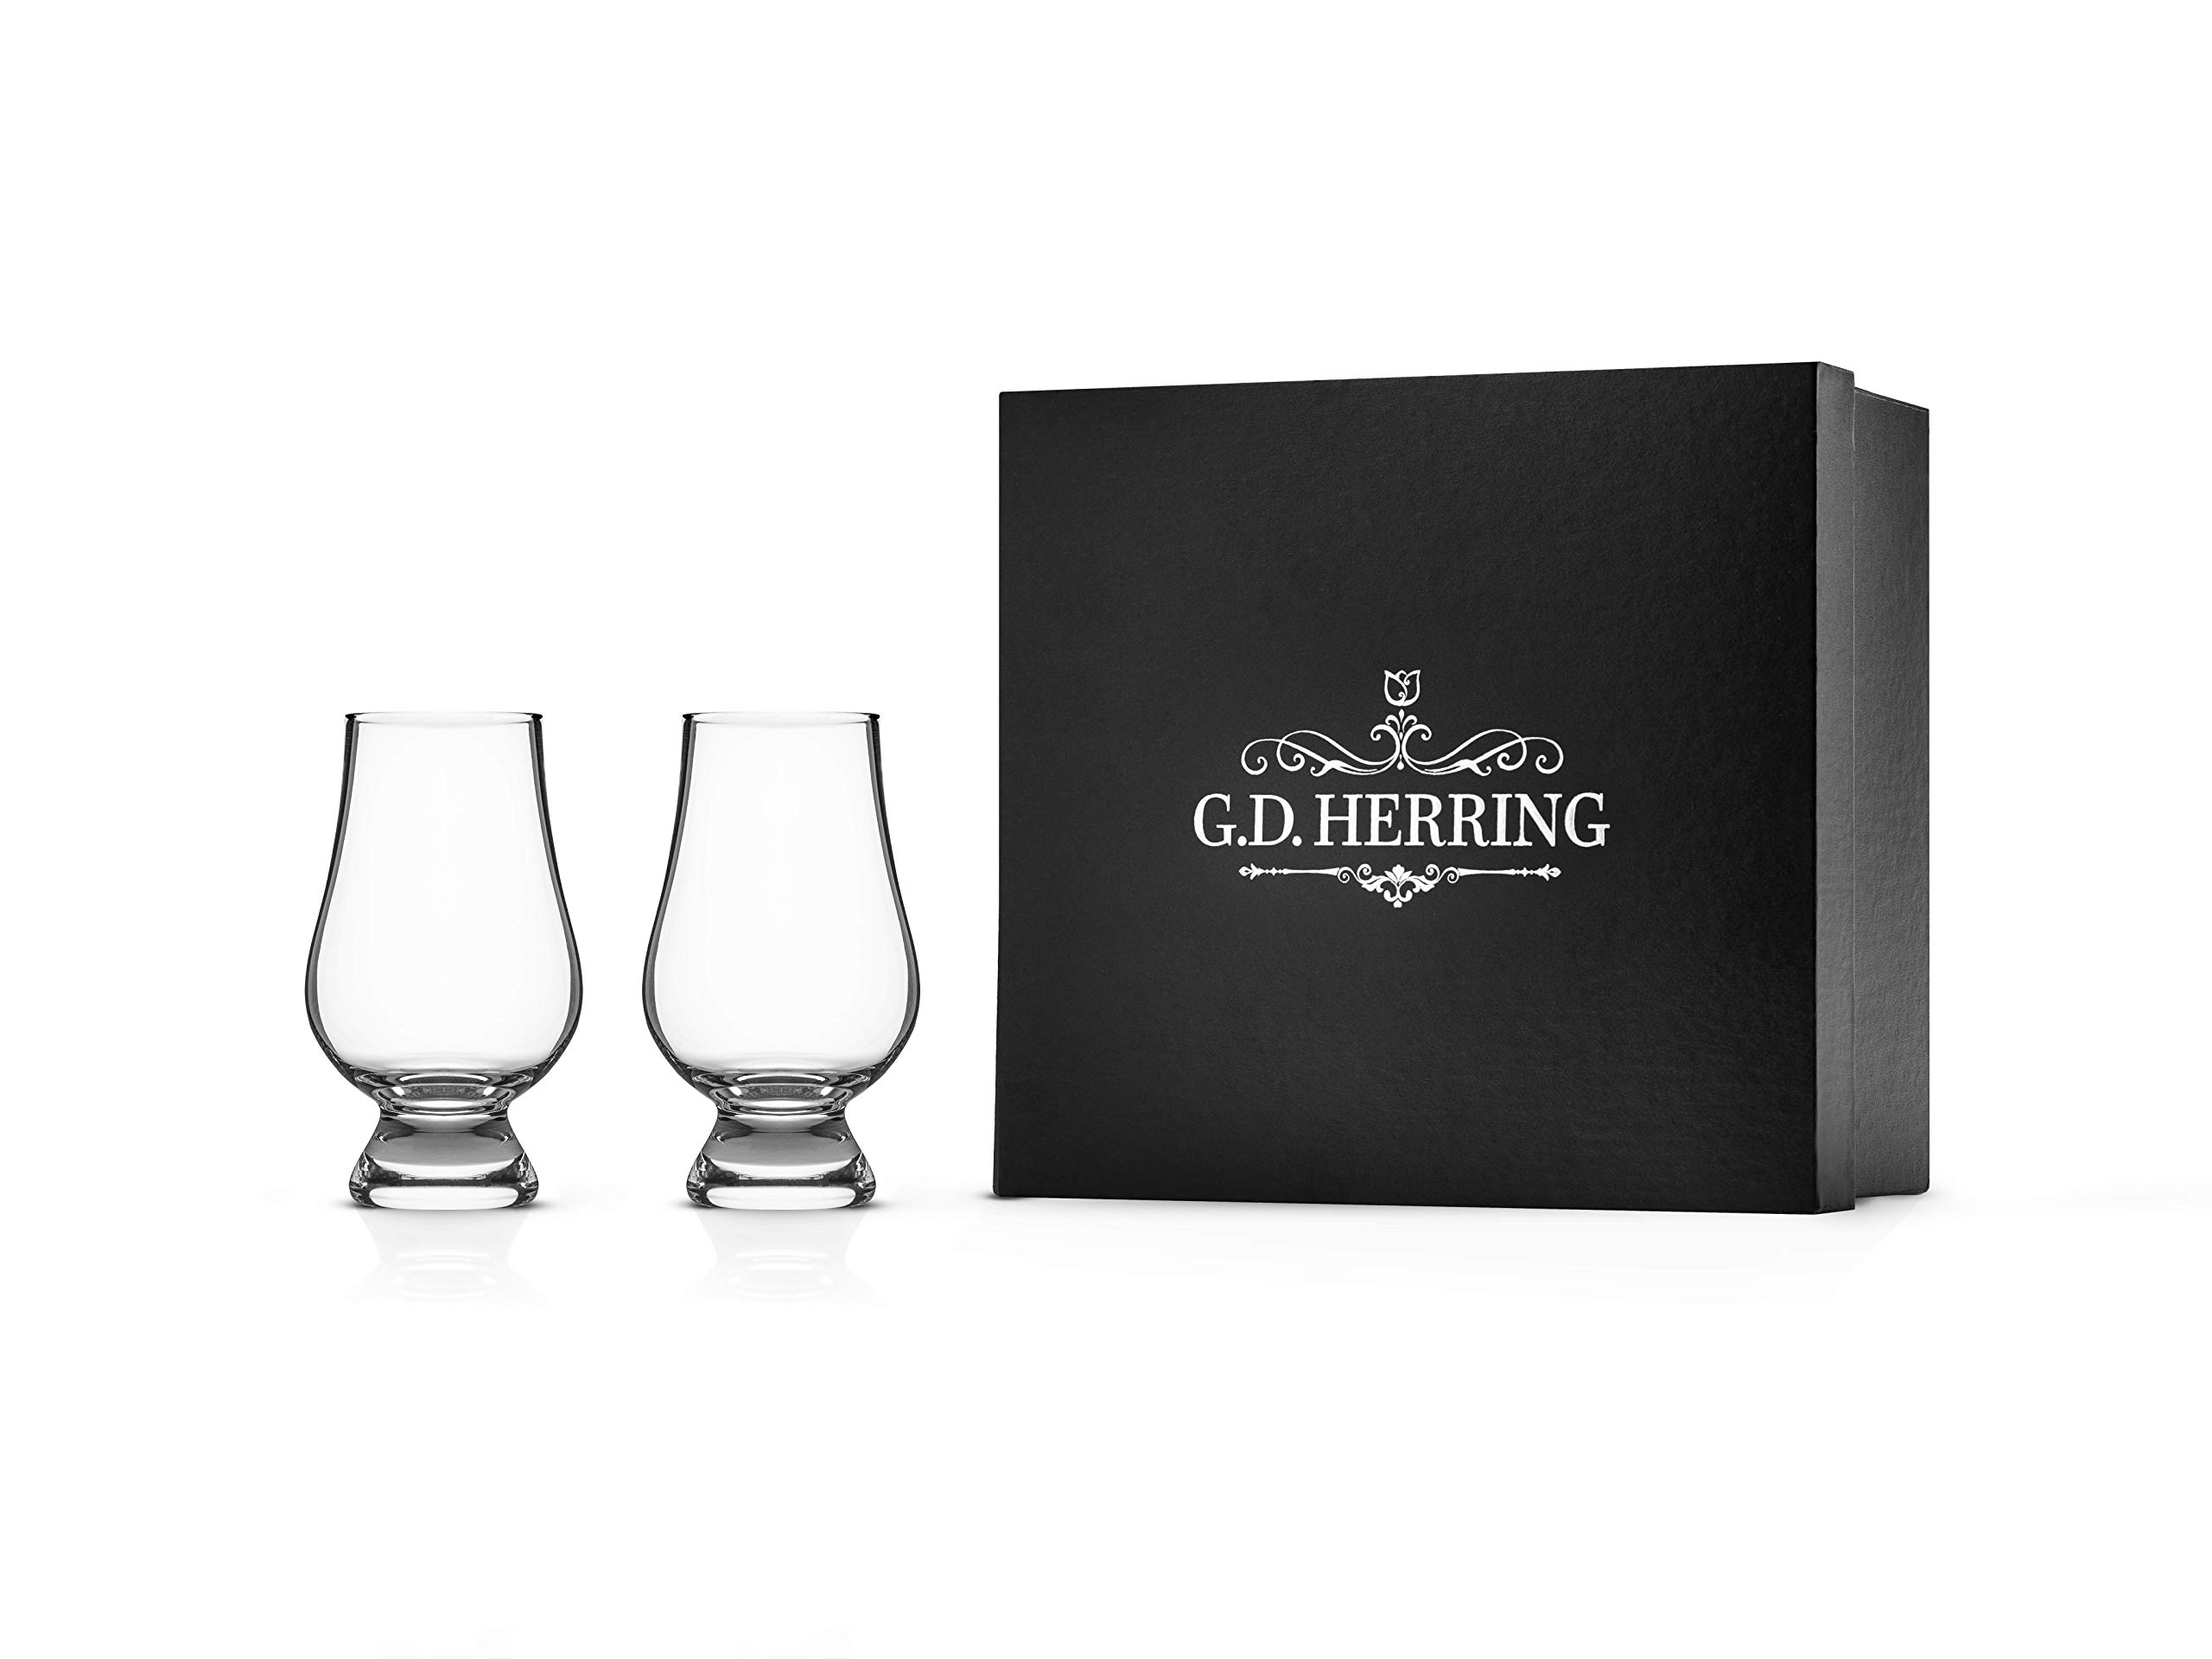 Lead-Free Crystal Whiskey Glass Snifter, Set of Two In Gift Box, For Drinking Bourbon, Scotch, Rum, Brandy And All Premium Spirits, From GD Herring